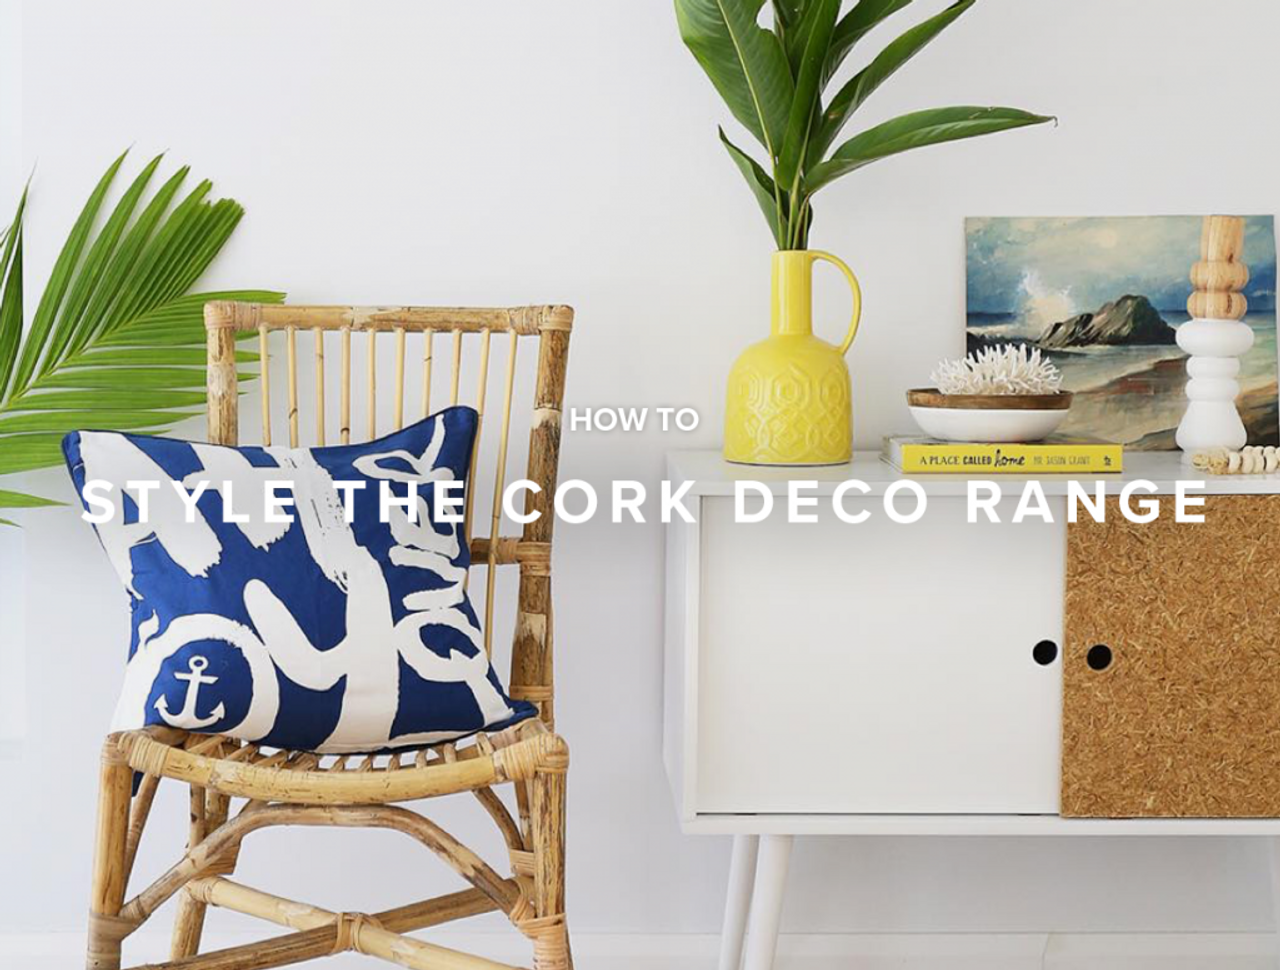 How to Style the Cork Deco Range